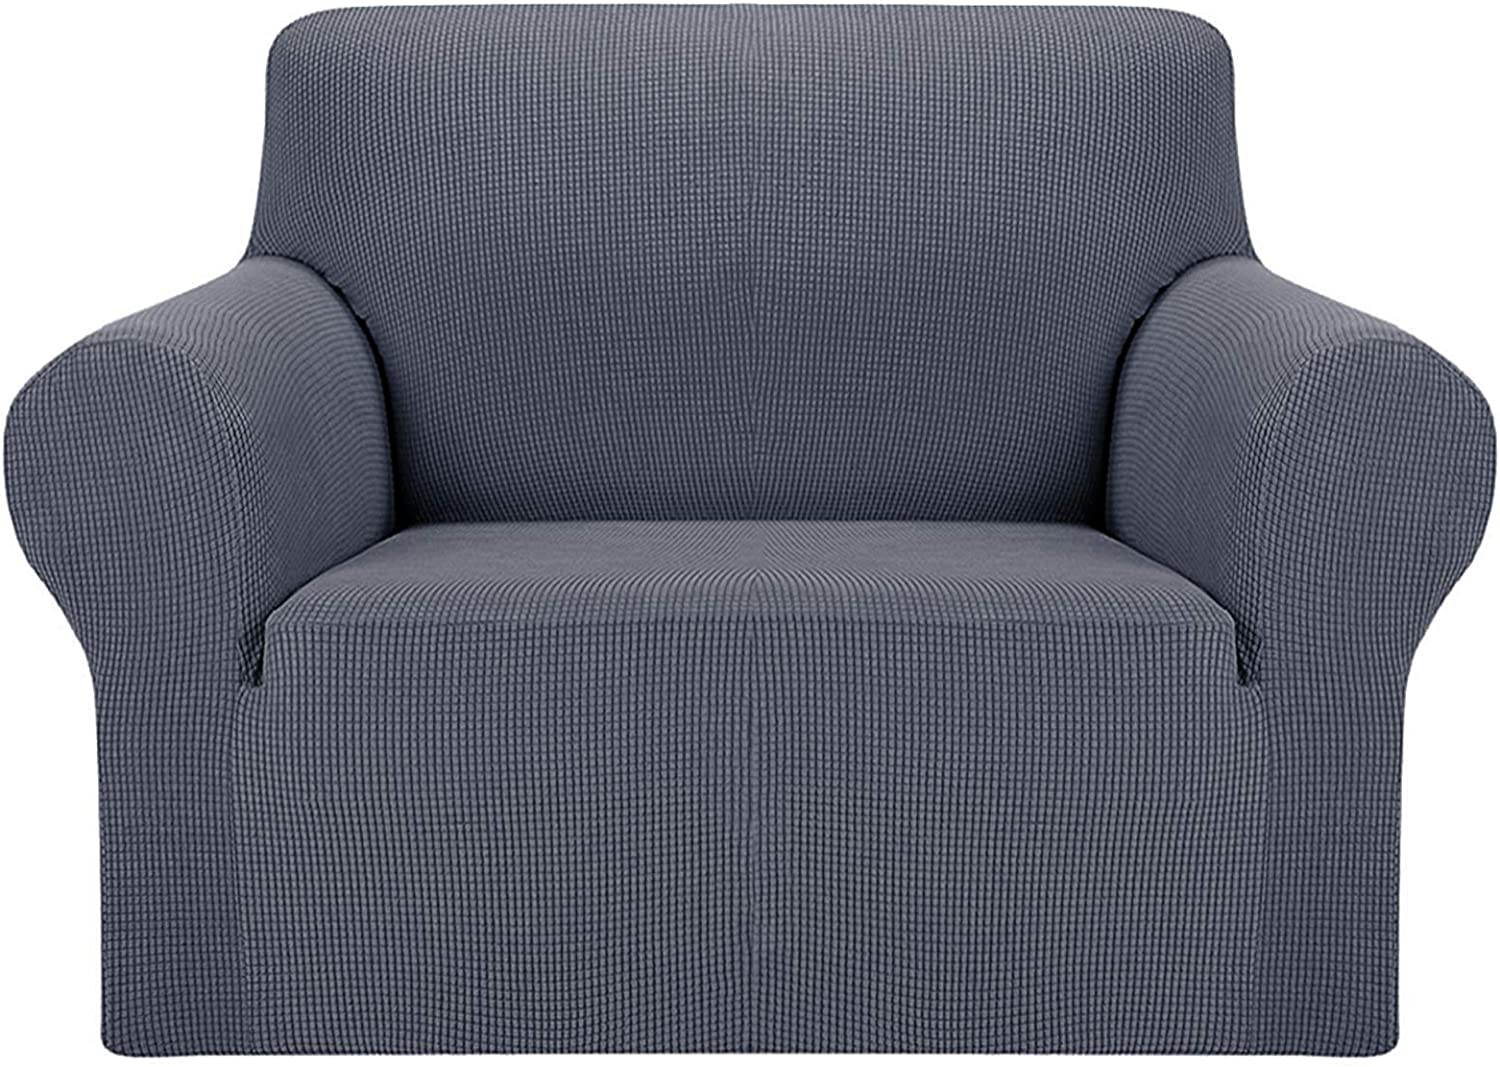 AlGaiety Stretch Chair Couch Cover Slipcover, Furniture Protector Spandex 1-Piece Sofa Cover (35